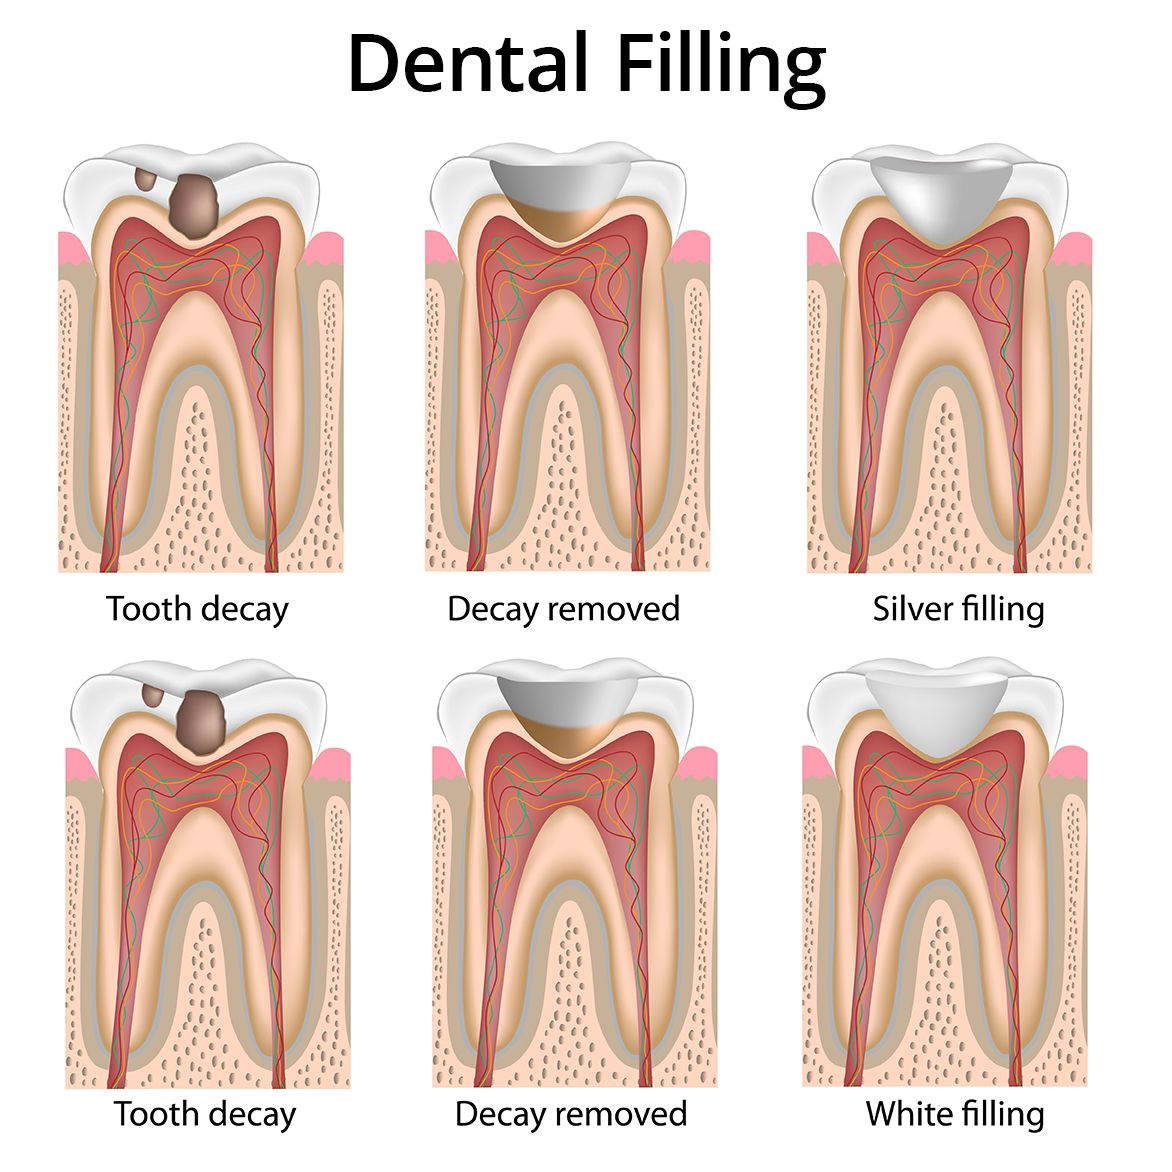 A diagram showing placement of a dental filling